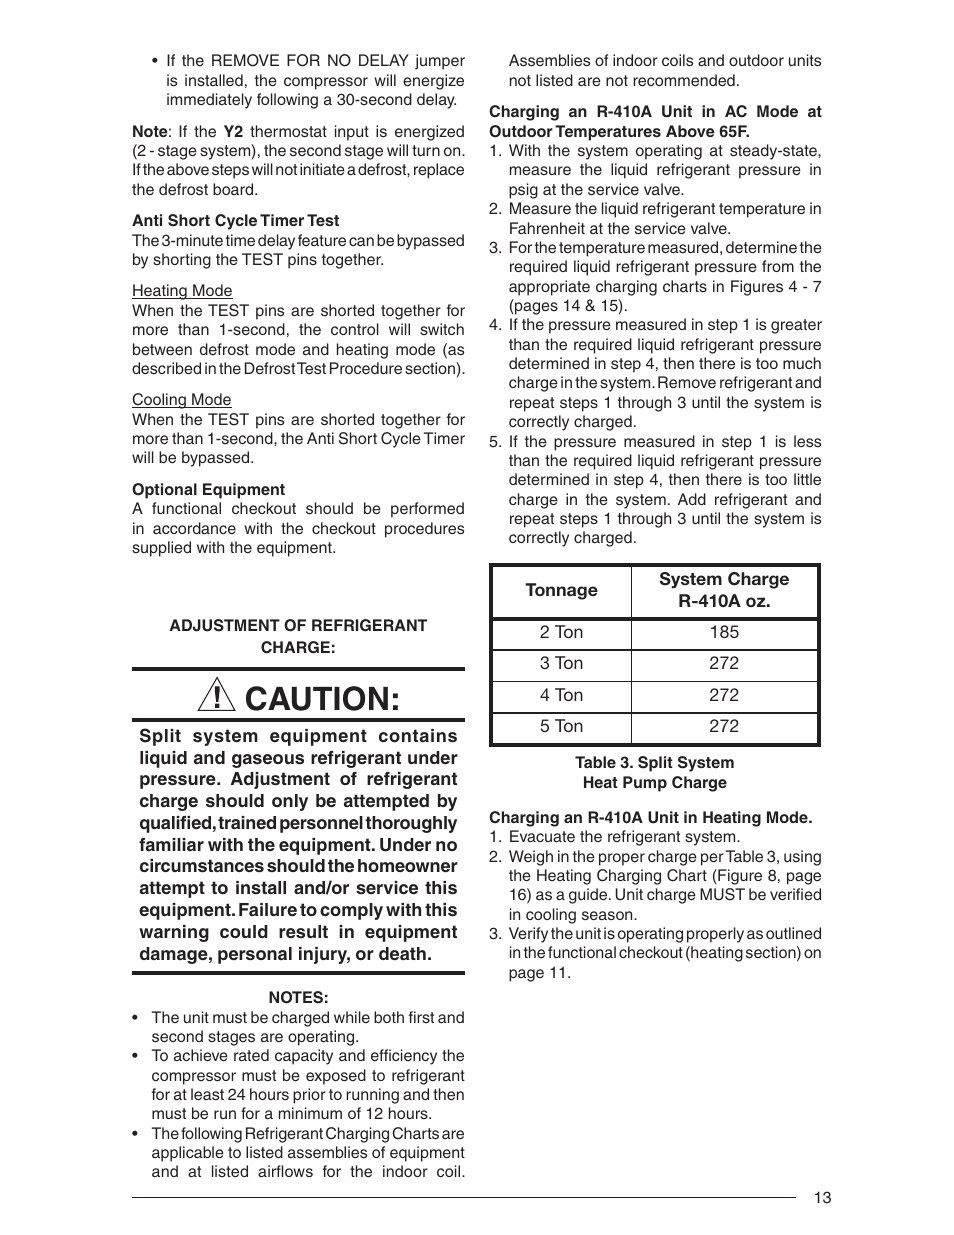 Caution | Nordyne Outdoor Heat Pump Two Stage Split System R-410A